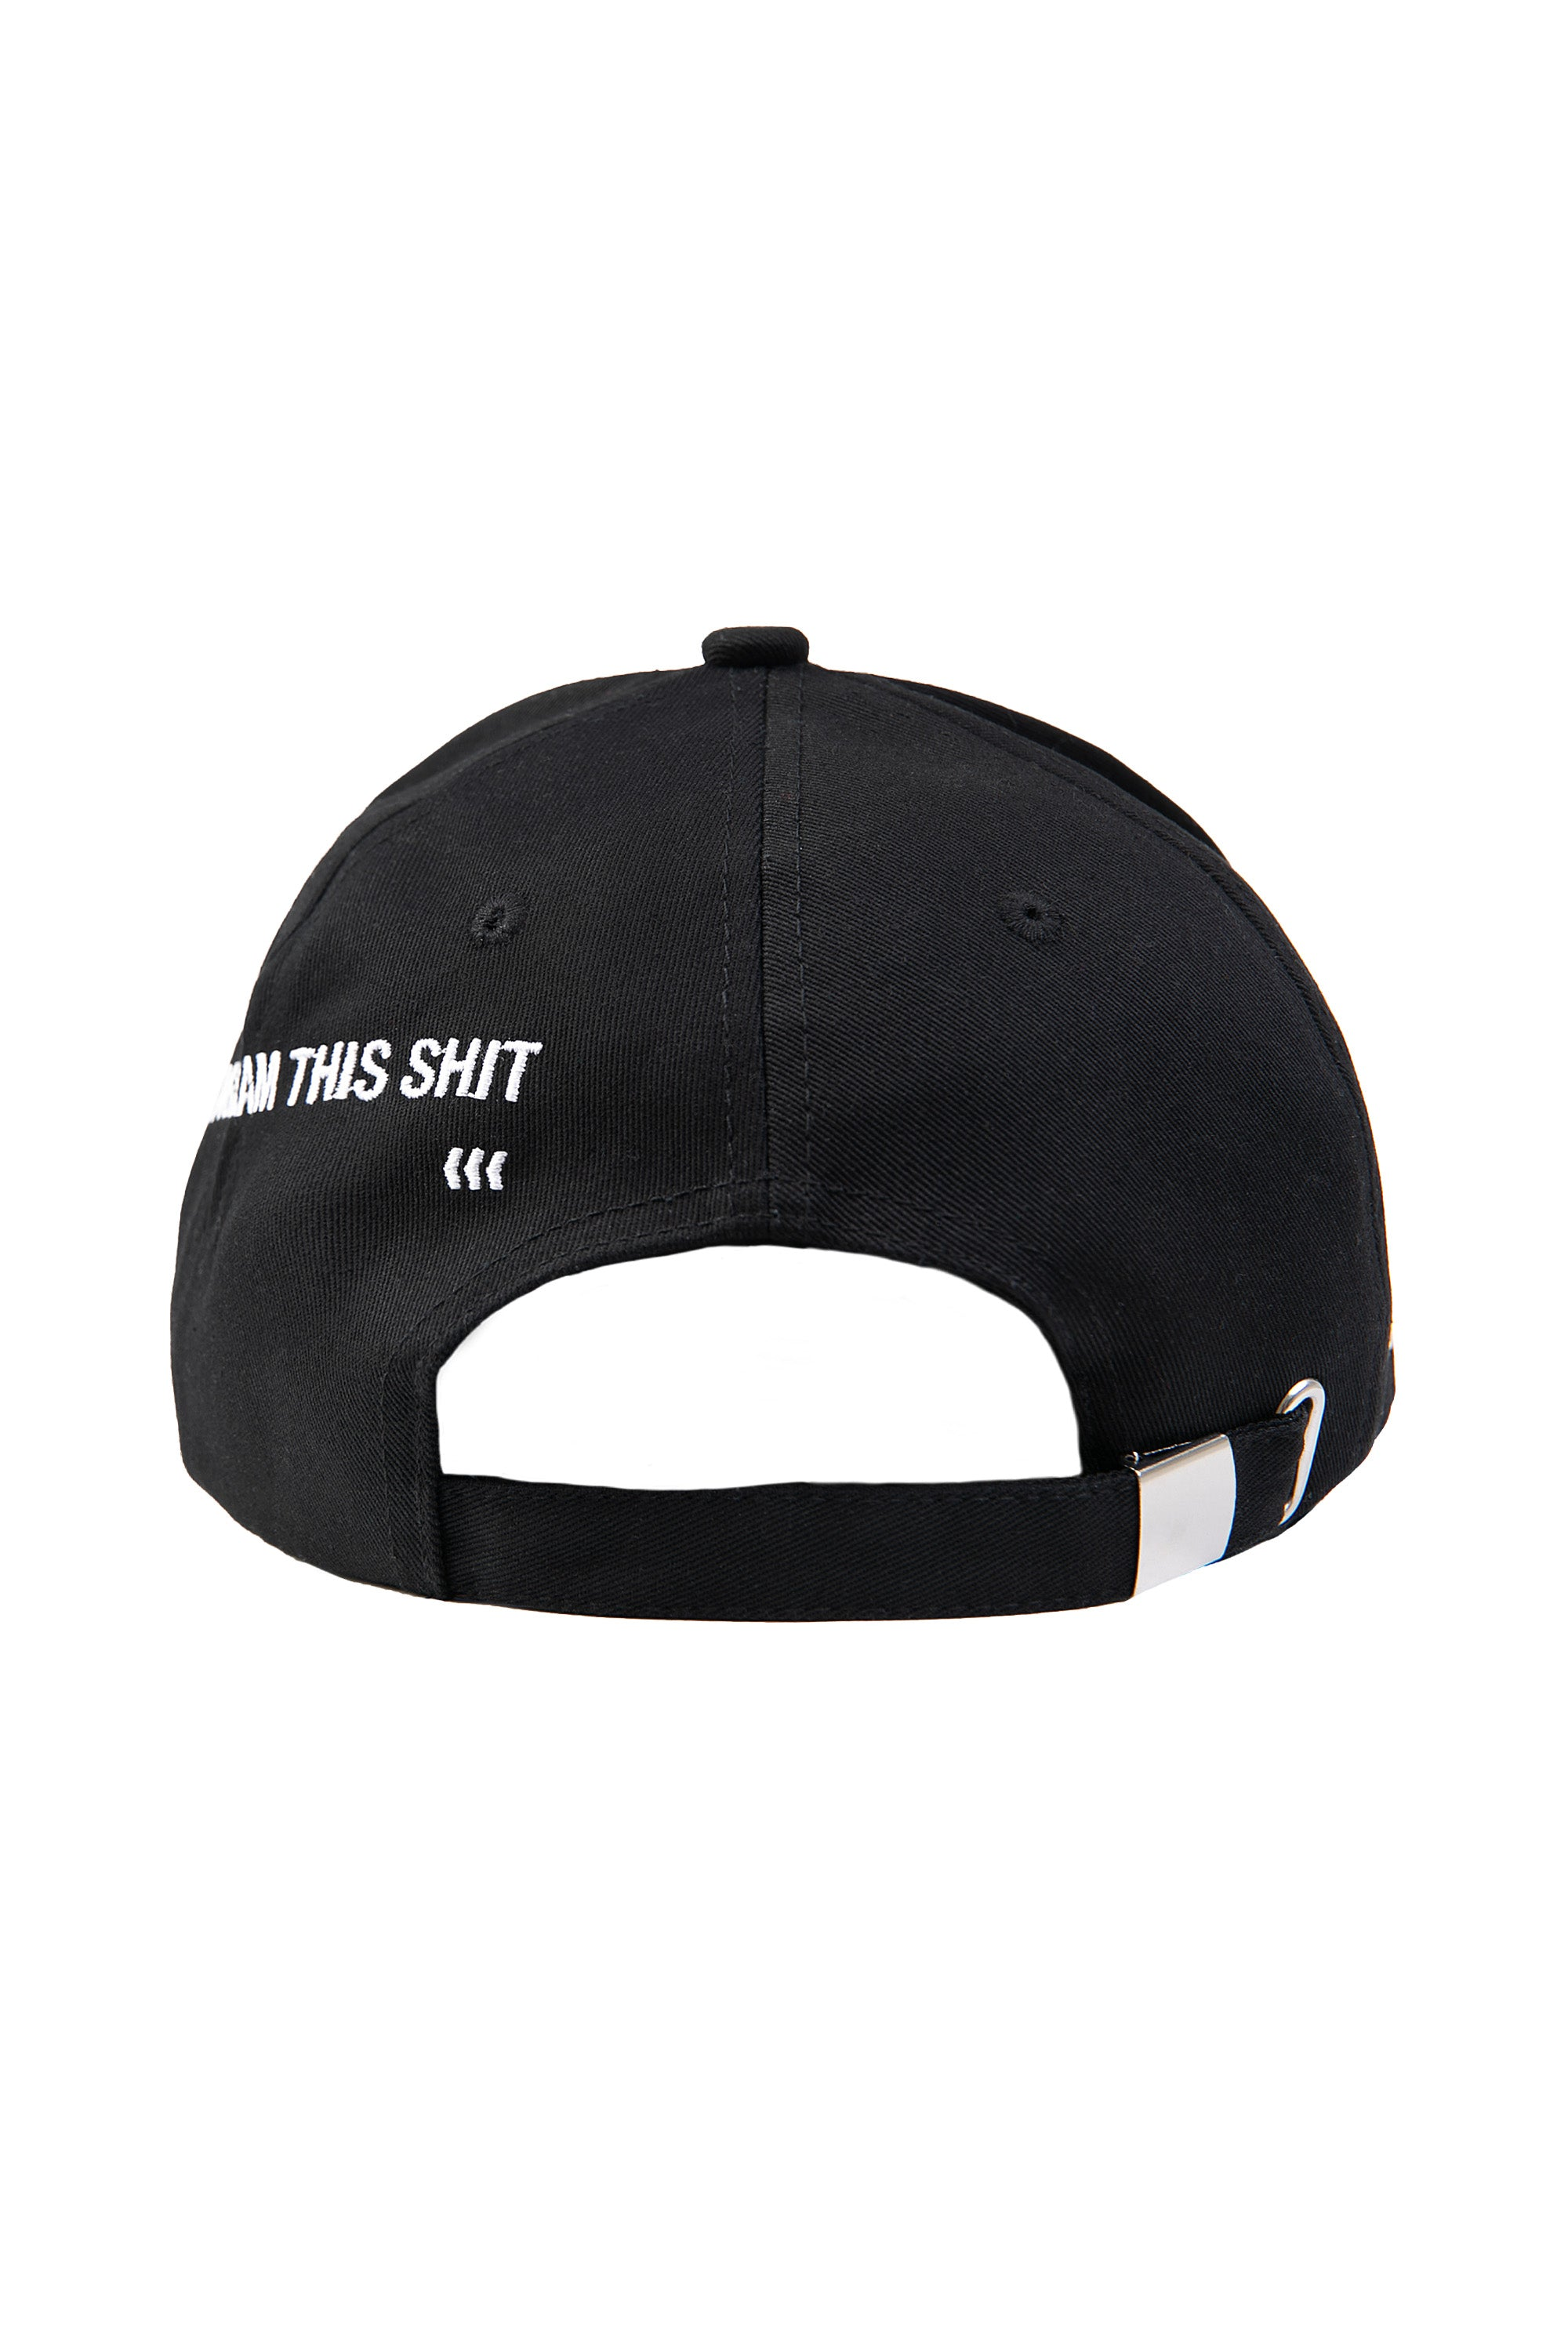 """COMMUND"" DAD CAP 